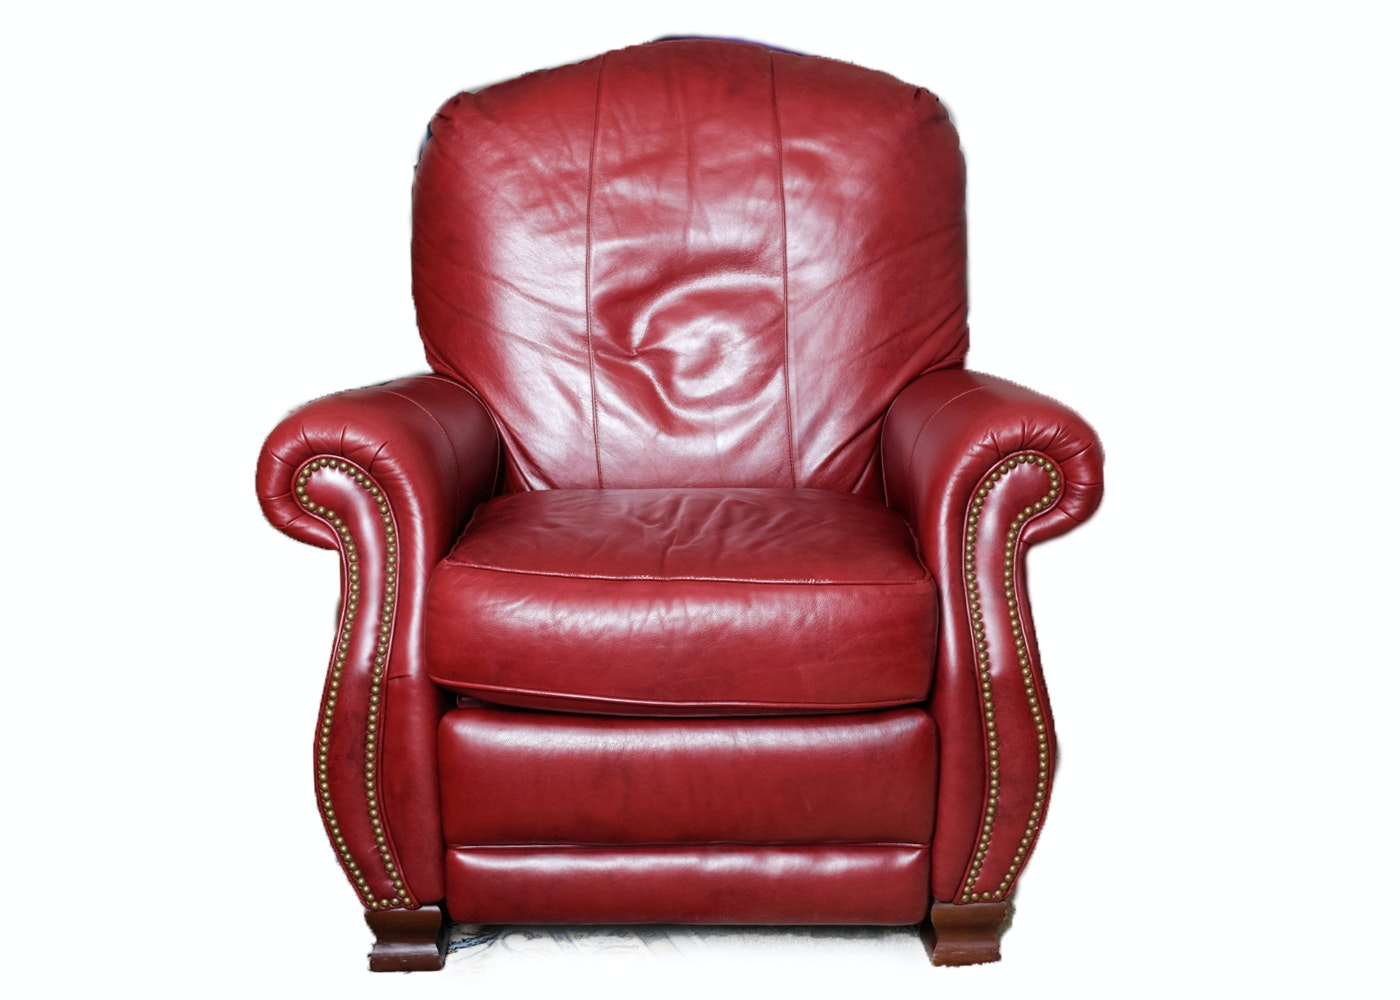 Bradington Young Red Leather Recliner ...  sc 1 st  Everything But The House : red leather recliner - islam-shia.org